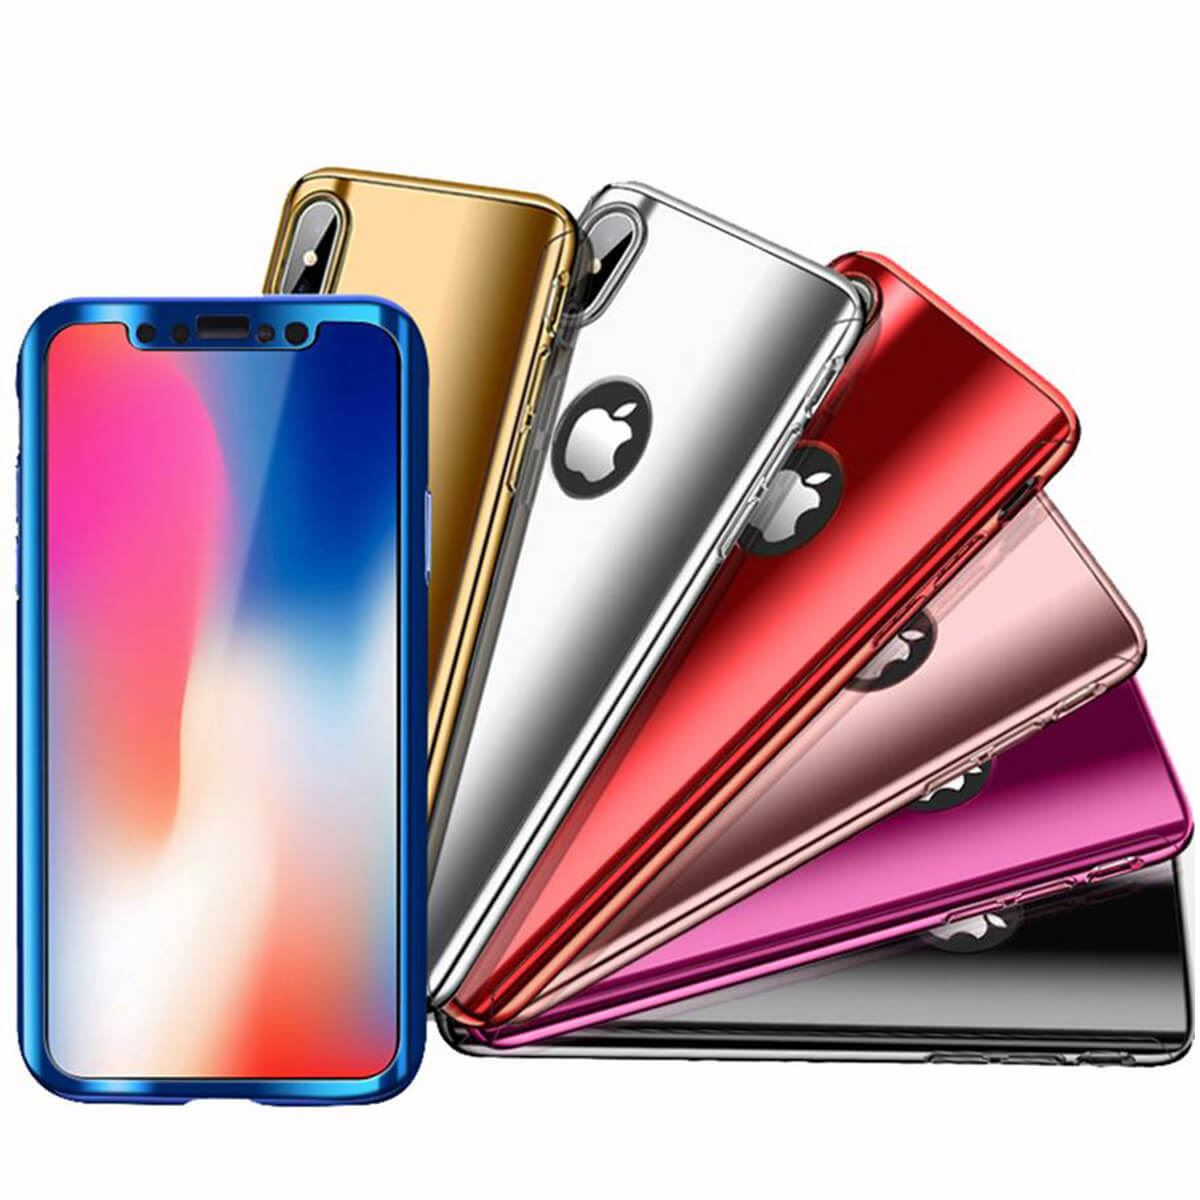 Tempered-Glass-Cover-For-iPhone-X-8-7-Plus-6s-5-Mirror-Hybrid-360-Hard-Thin-Case thumbnail 9